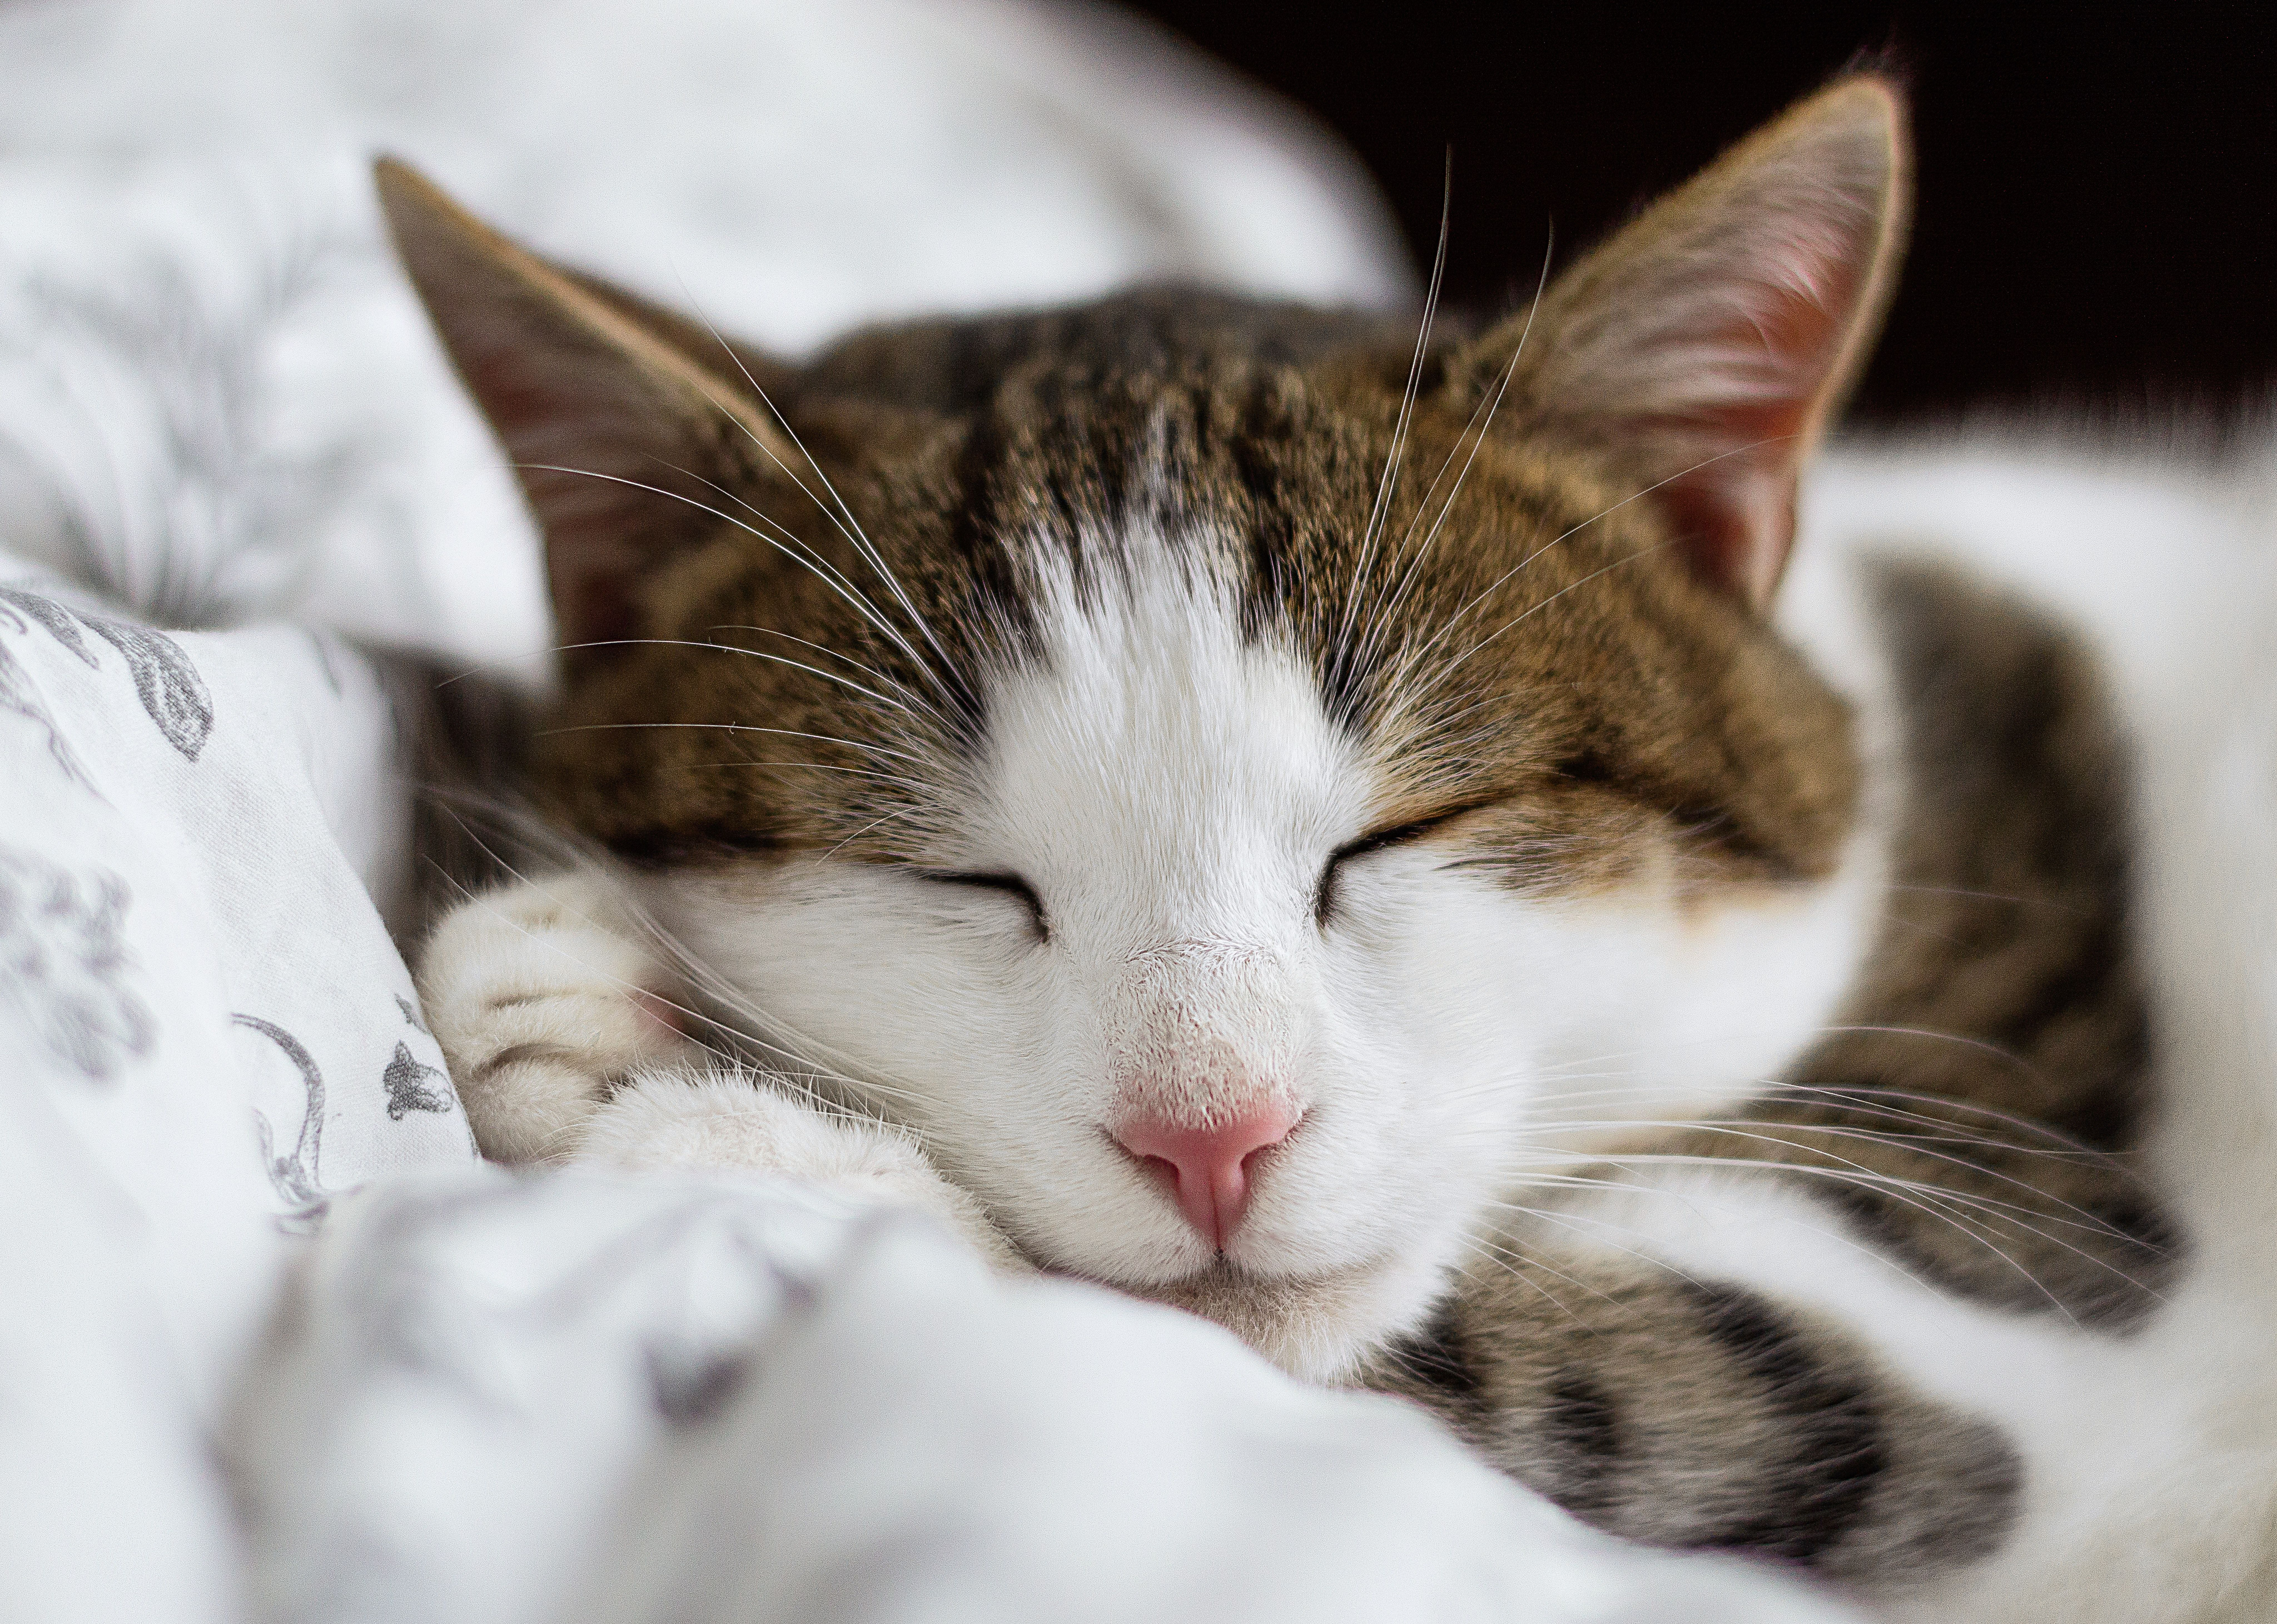 Close Up Of A Sleeping White And Brown Tabby Cat With Images